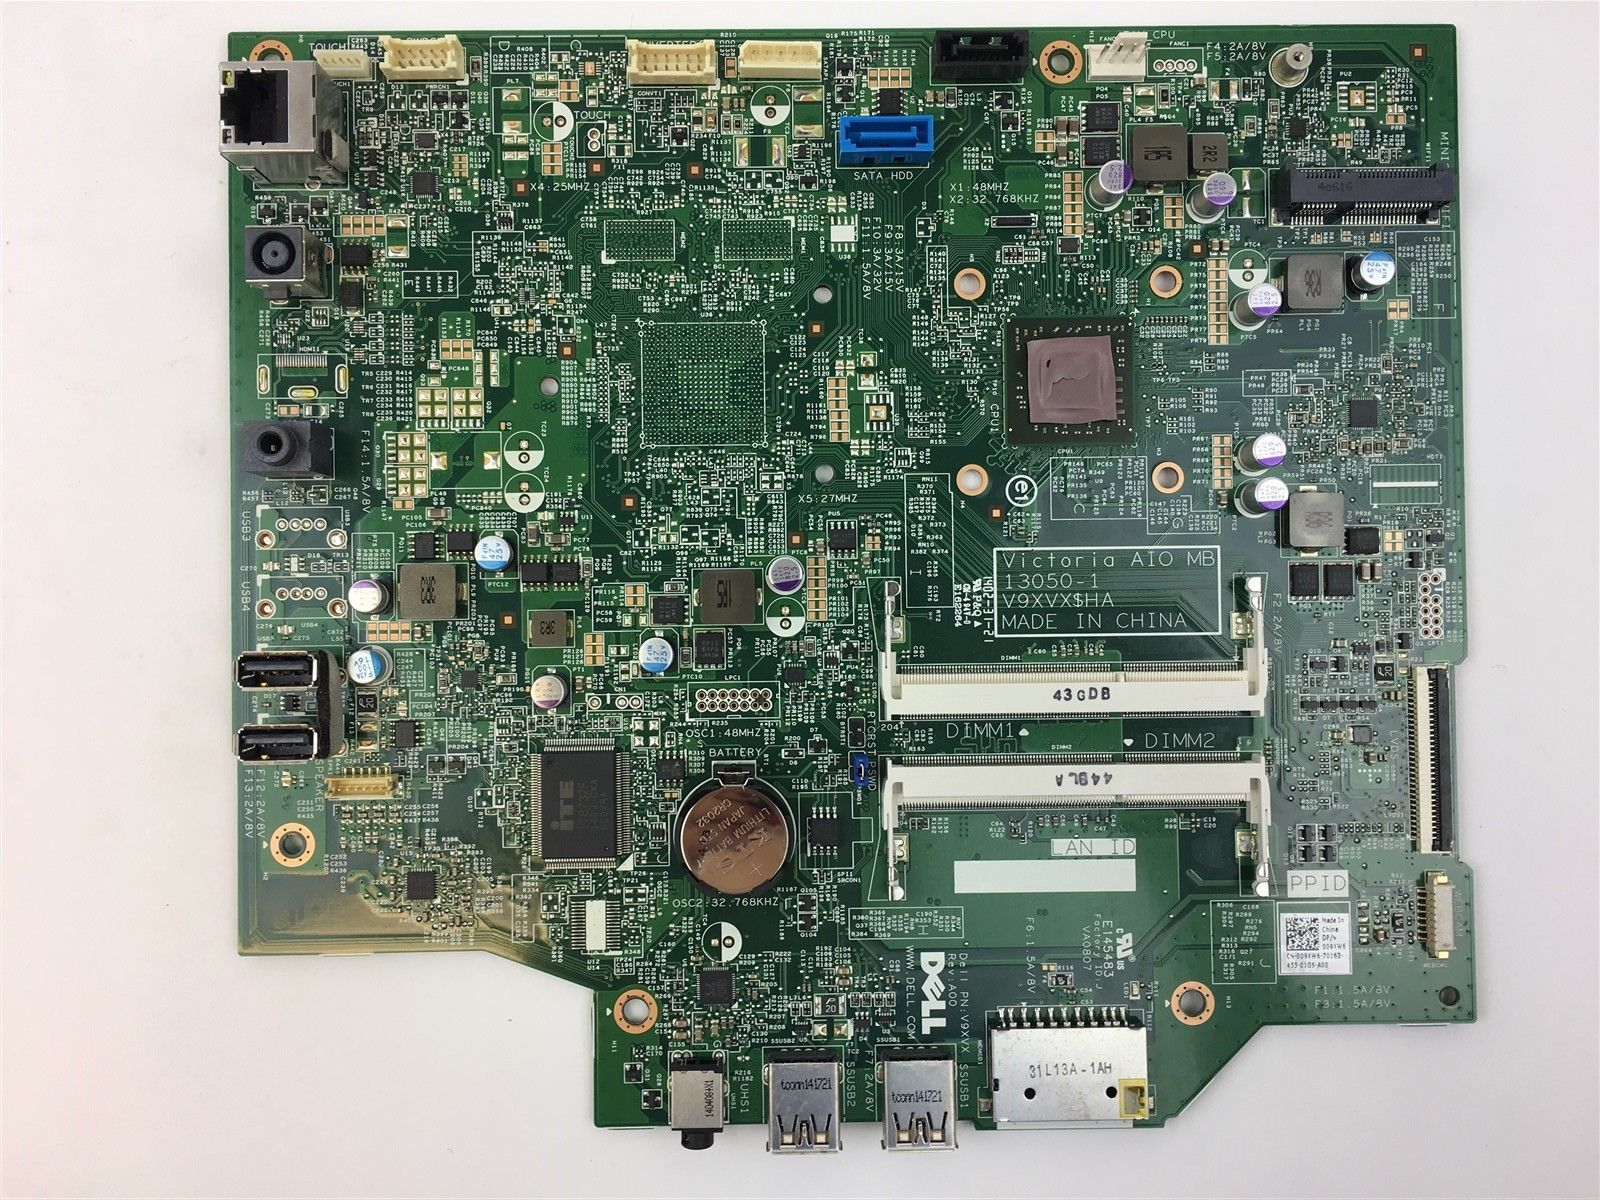 Dell Inspiron 20 3045 AIO AMD 1.4GHz CPU E1-2500 Motherboard 09XW6 009XW6